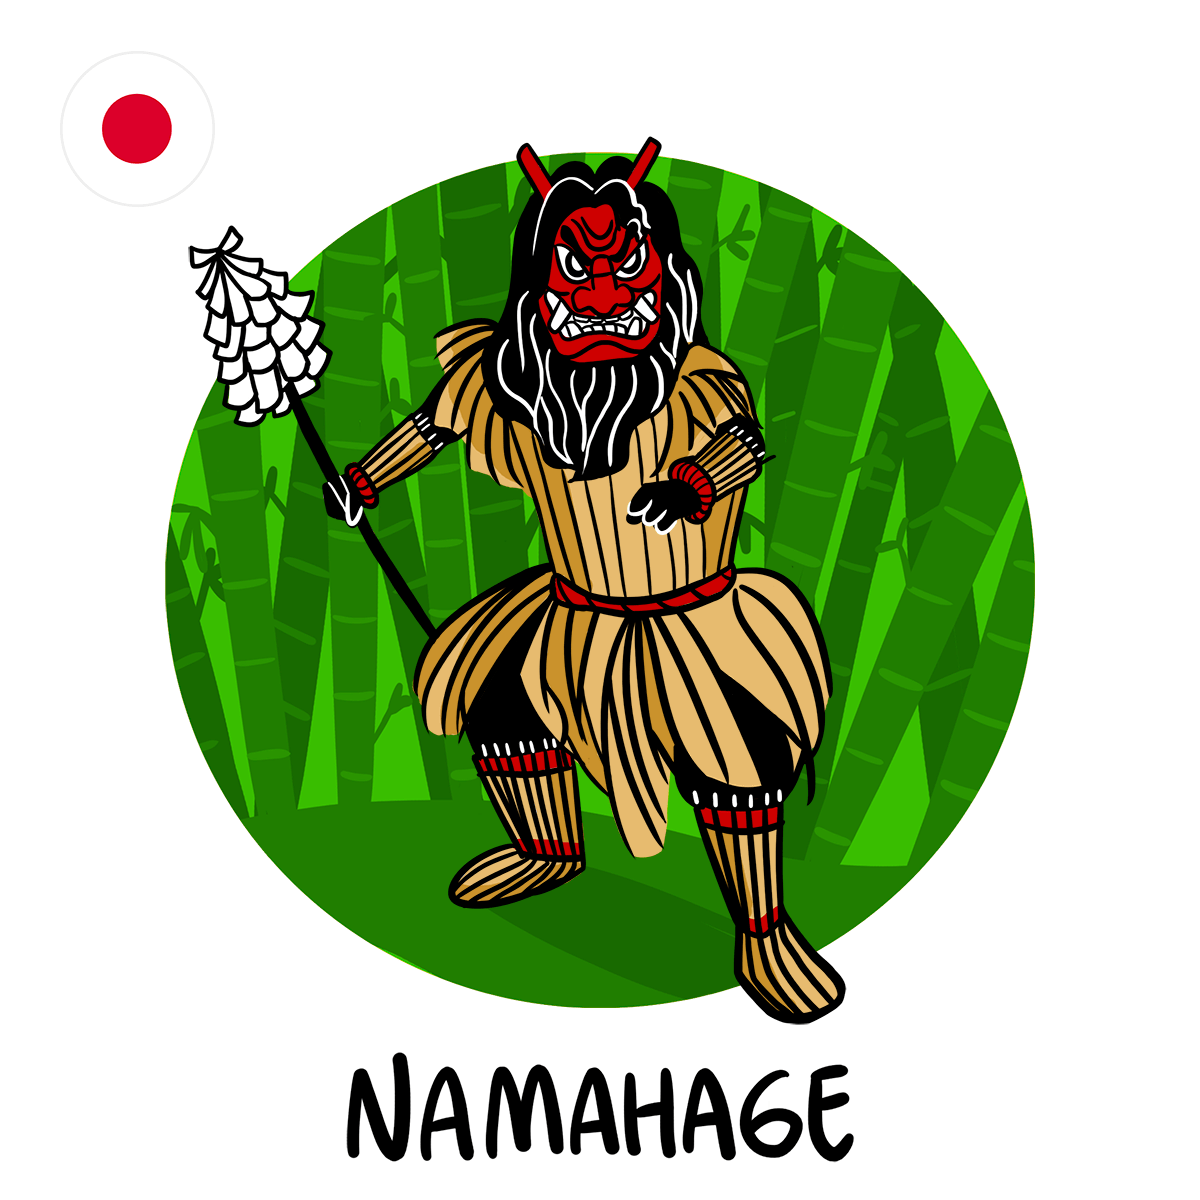 Namahage illustration of Japanese Boogeyman